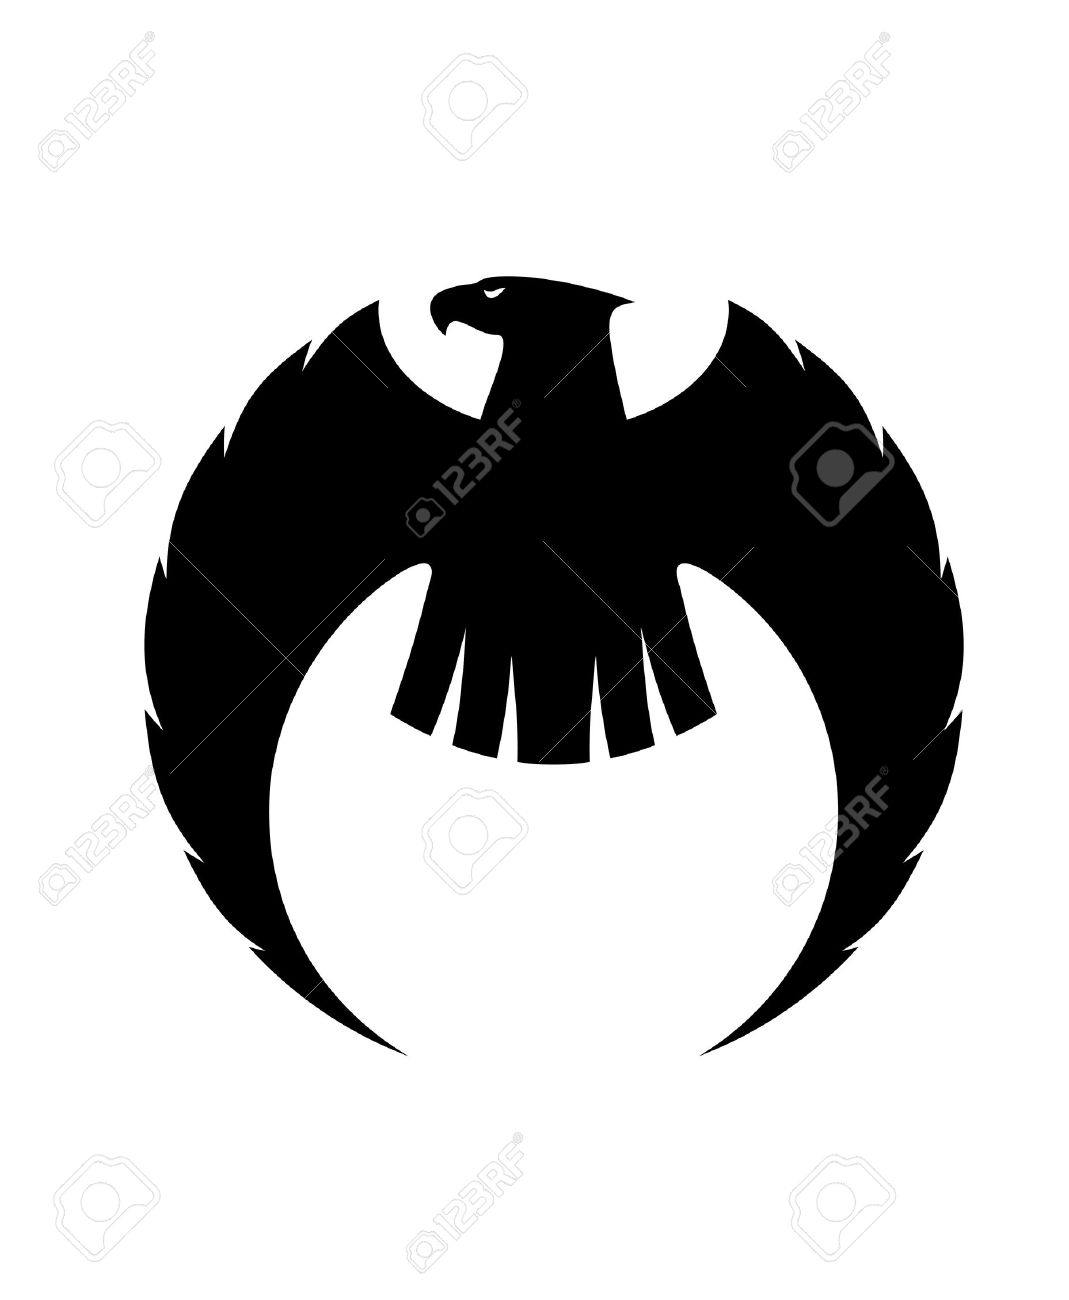 25950401-Powerful-eagle-      Eagle Head Silhouette Vector